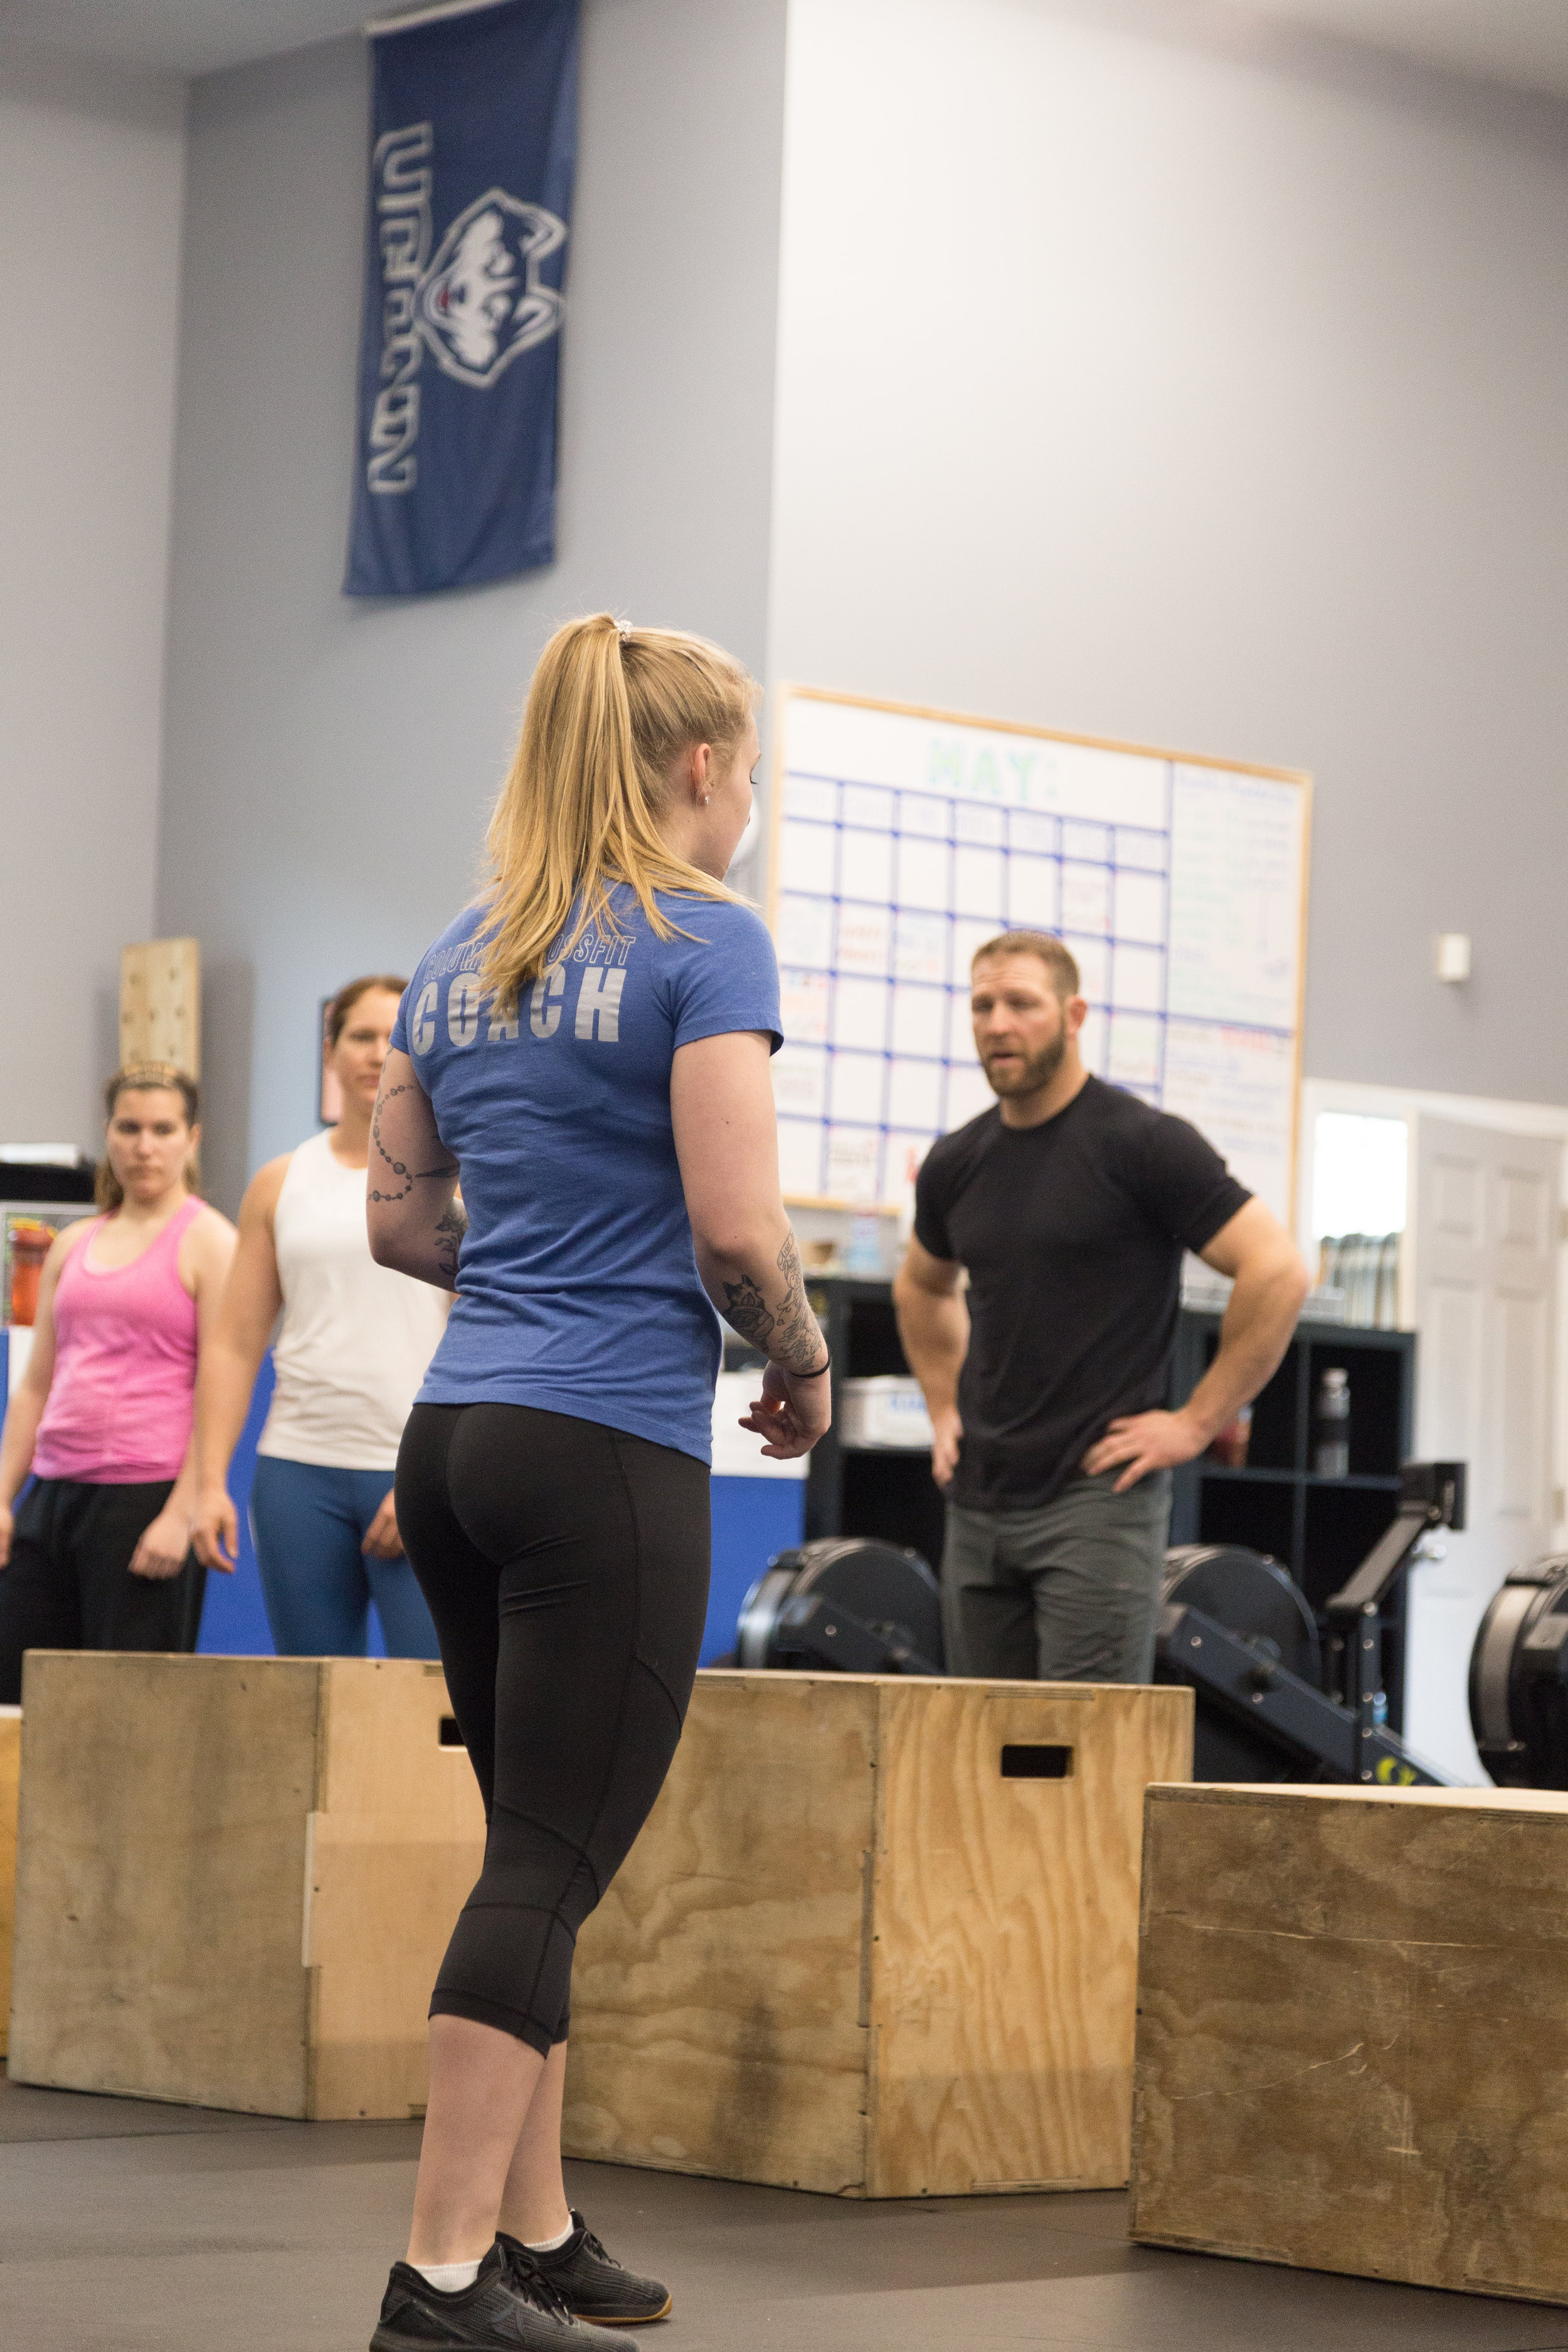 CrossFit Classes - We offer CrossFit Classes for A wide VARIETY of Age Groups to ENSURE thAT THE classes are meeting the needs of the Adults, Teens and Children who are PARTICIPATING in our Program.